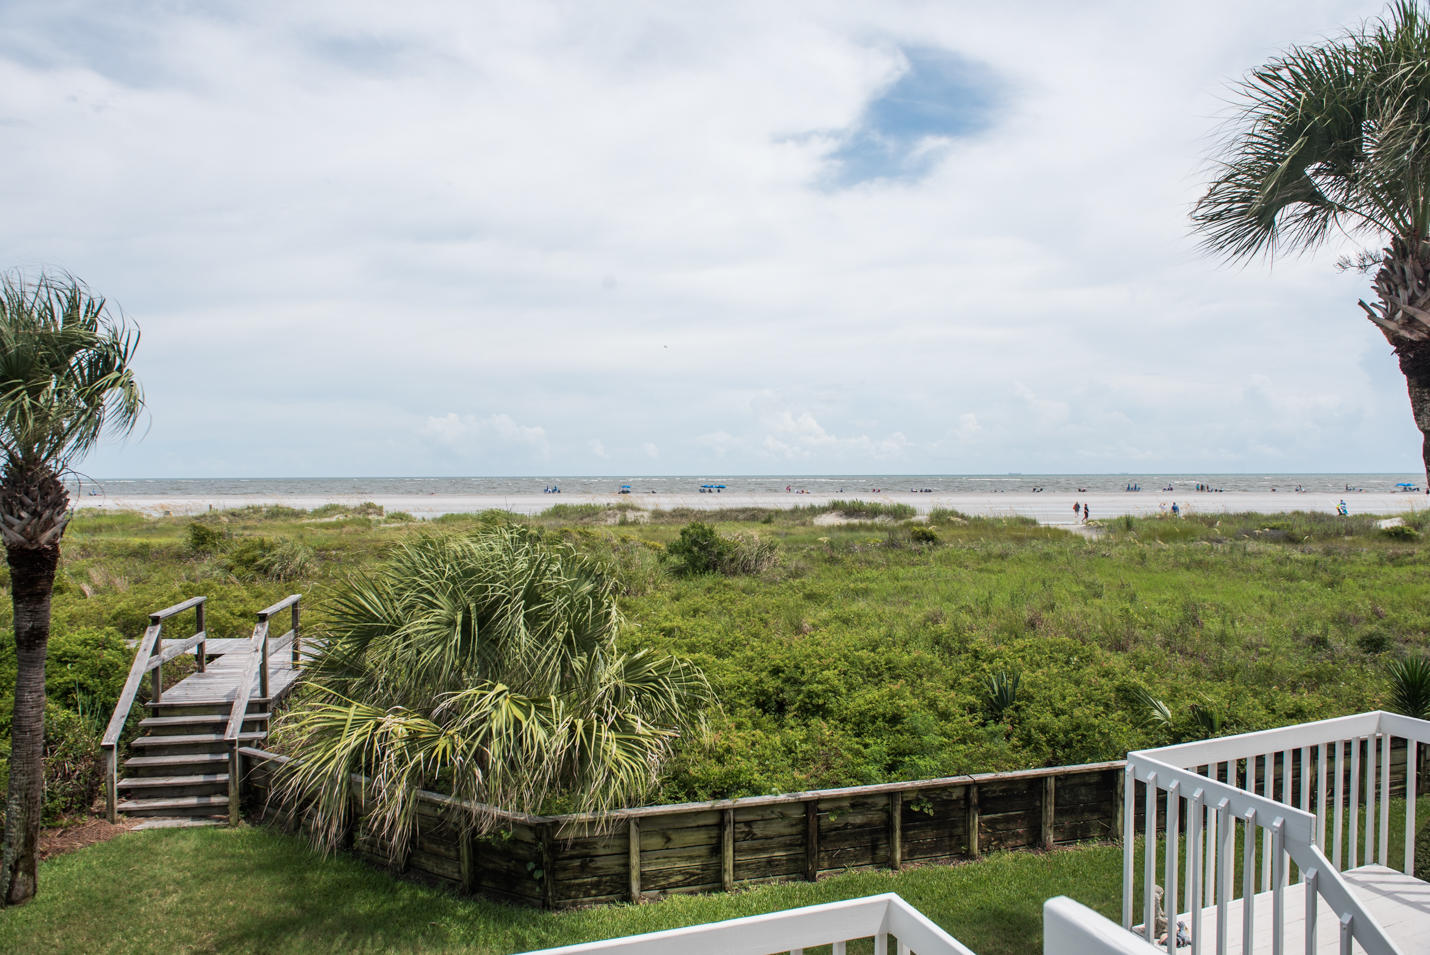 Beach Club Villas Homes For Sale - 66 Beach Club Villas, Isle of Palms, SC - 30